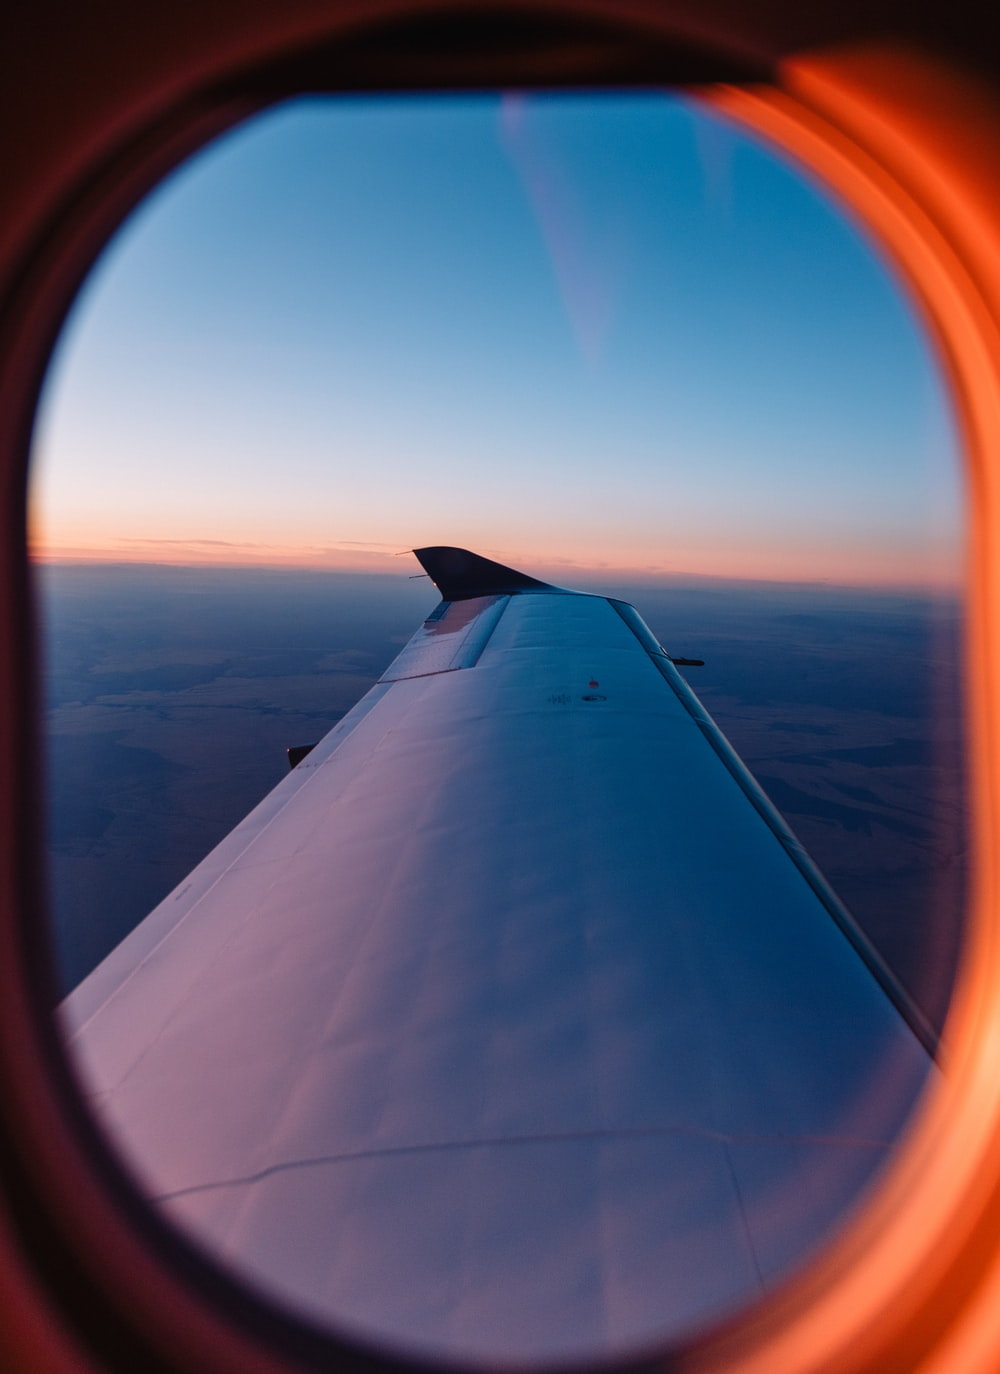 Plane Airplane Window And Wing HD Photo By Caleb Woods On Unsplash